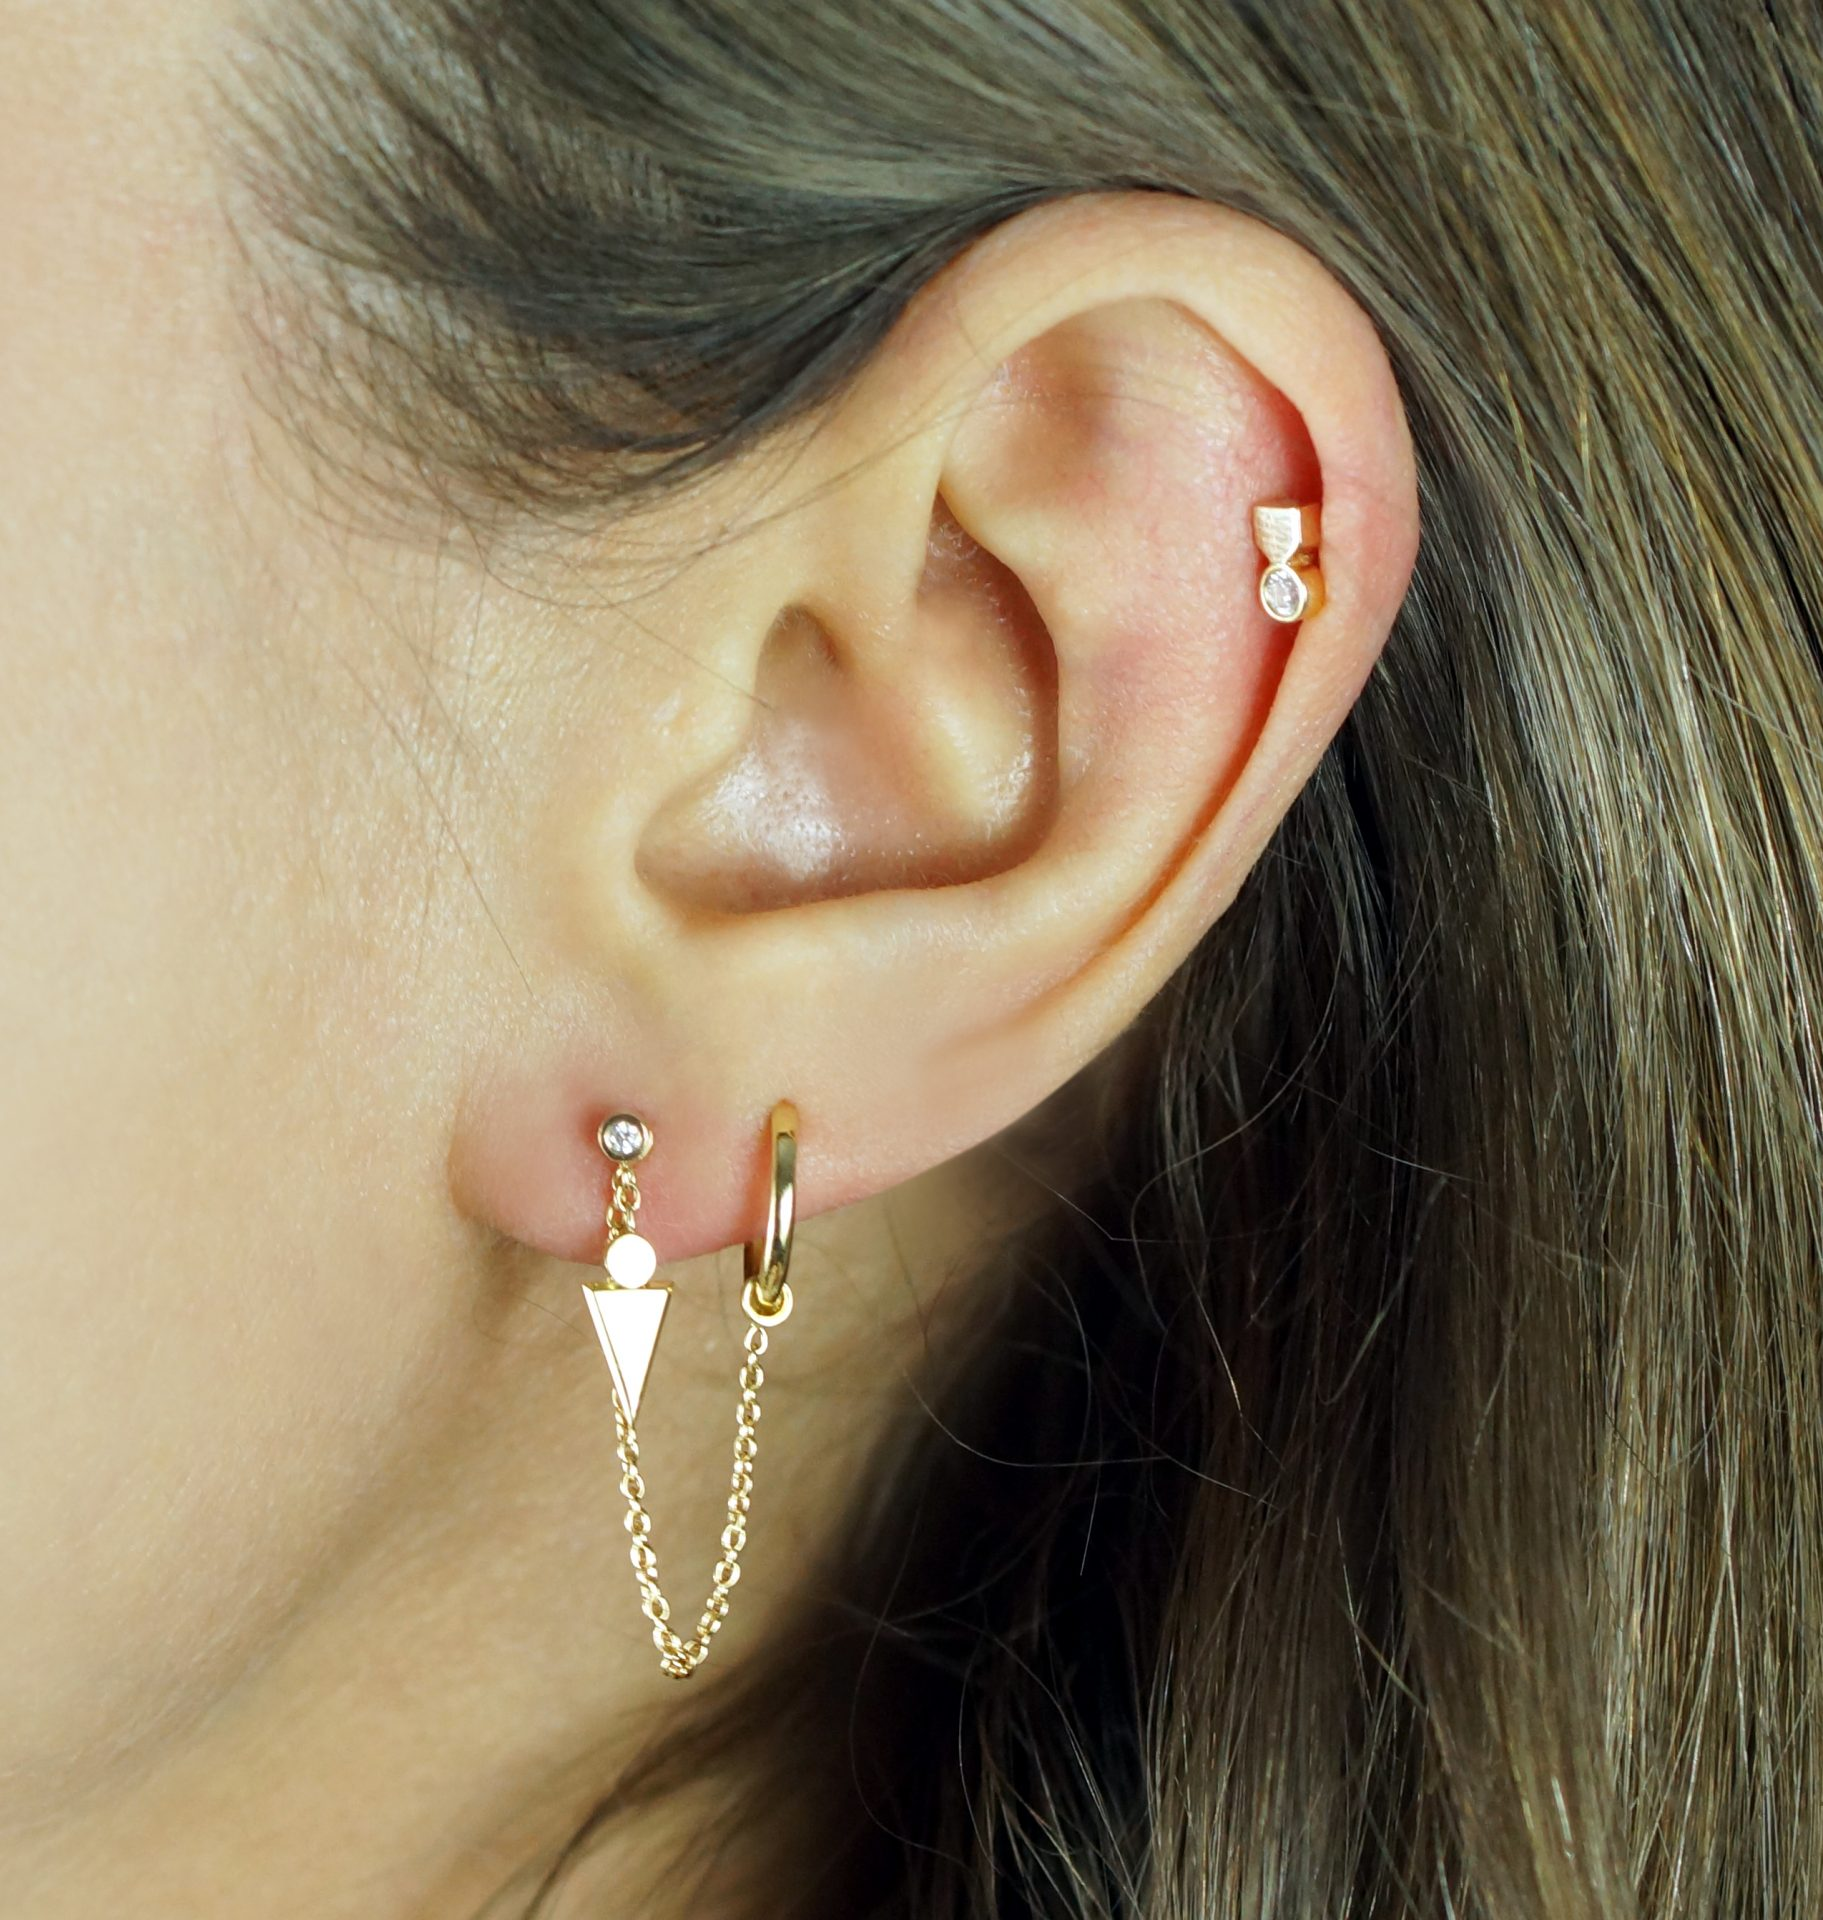 luxury cartilage earrings uk